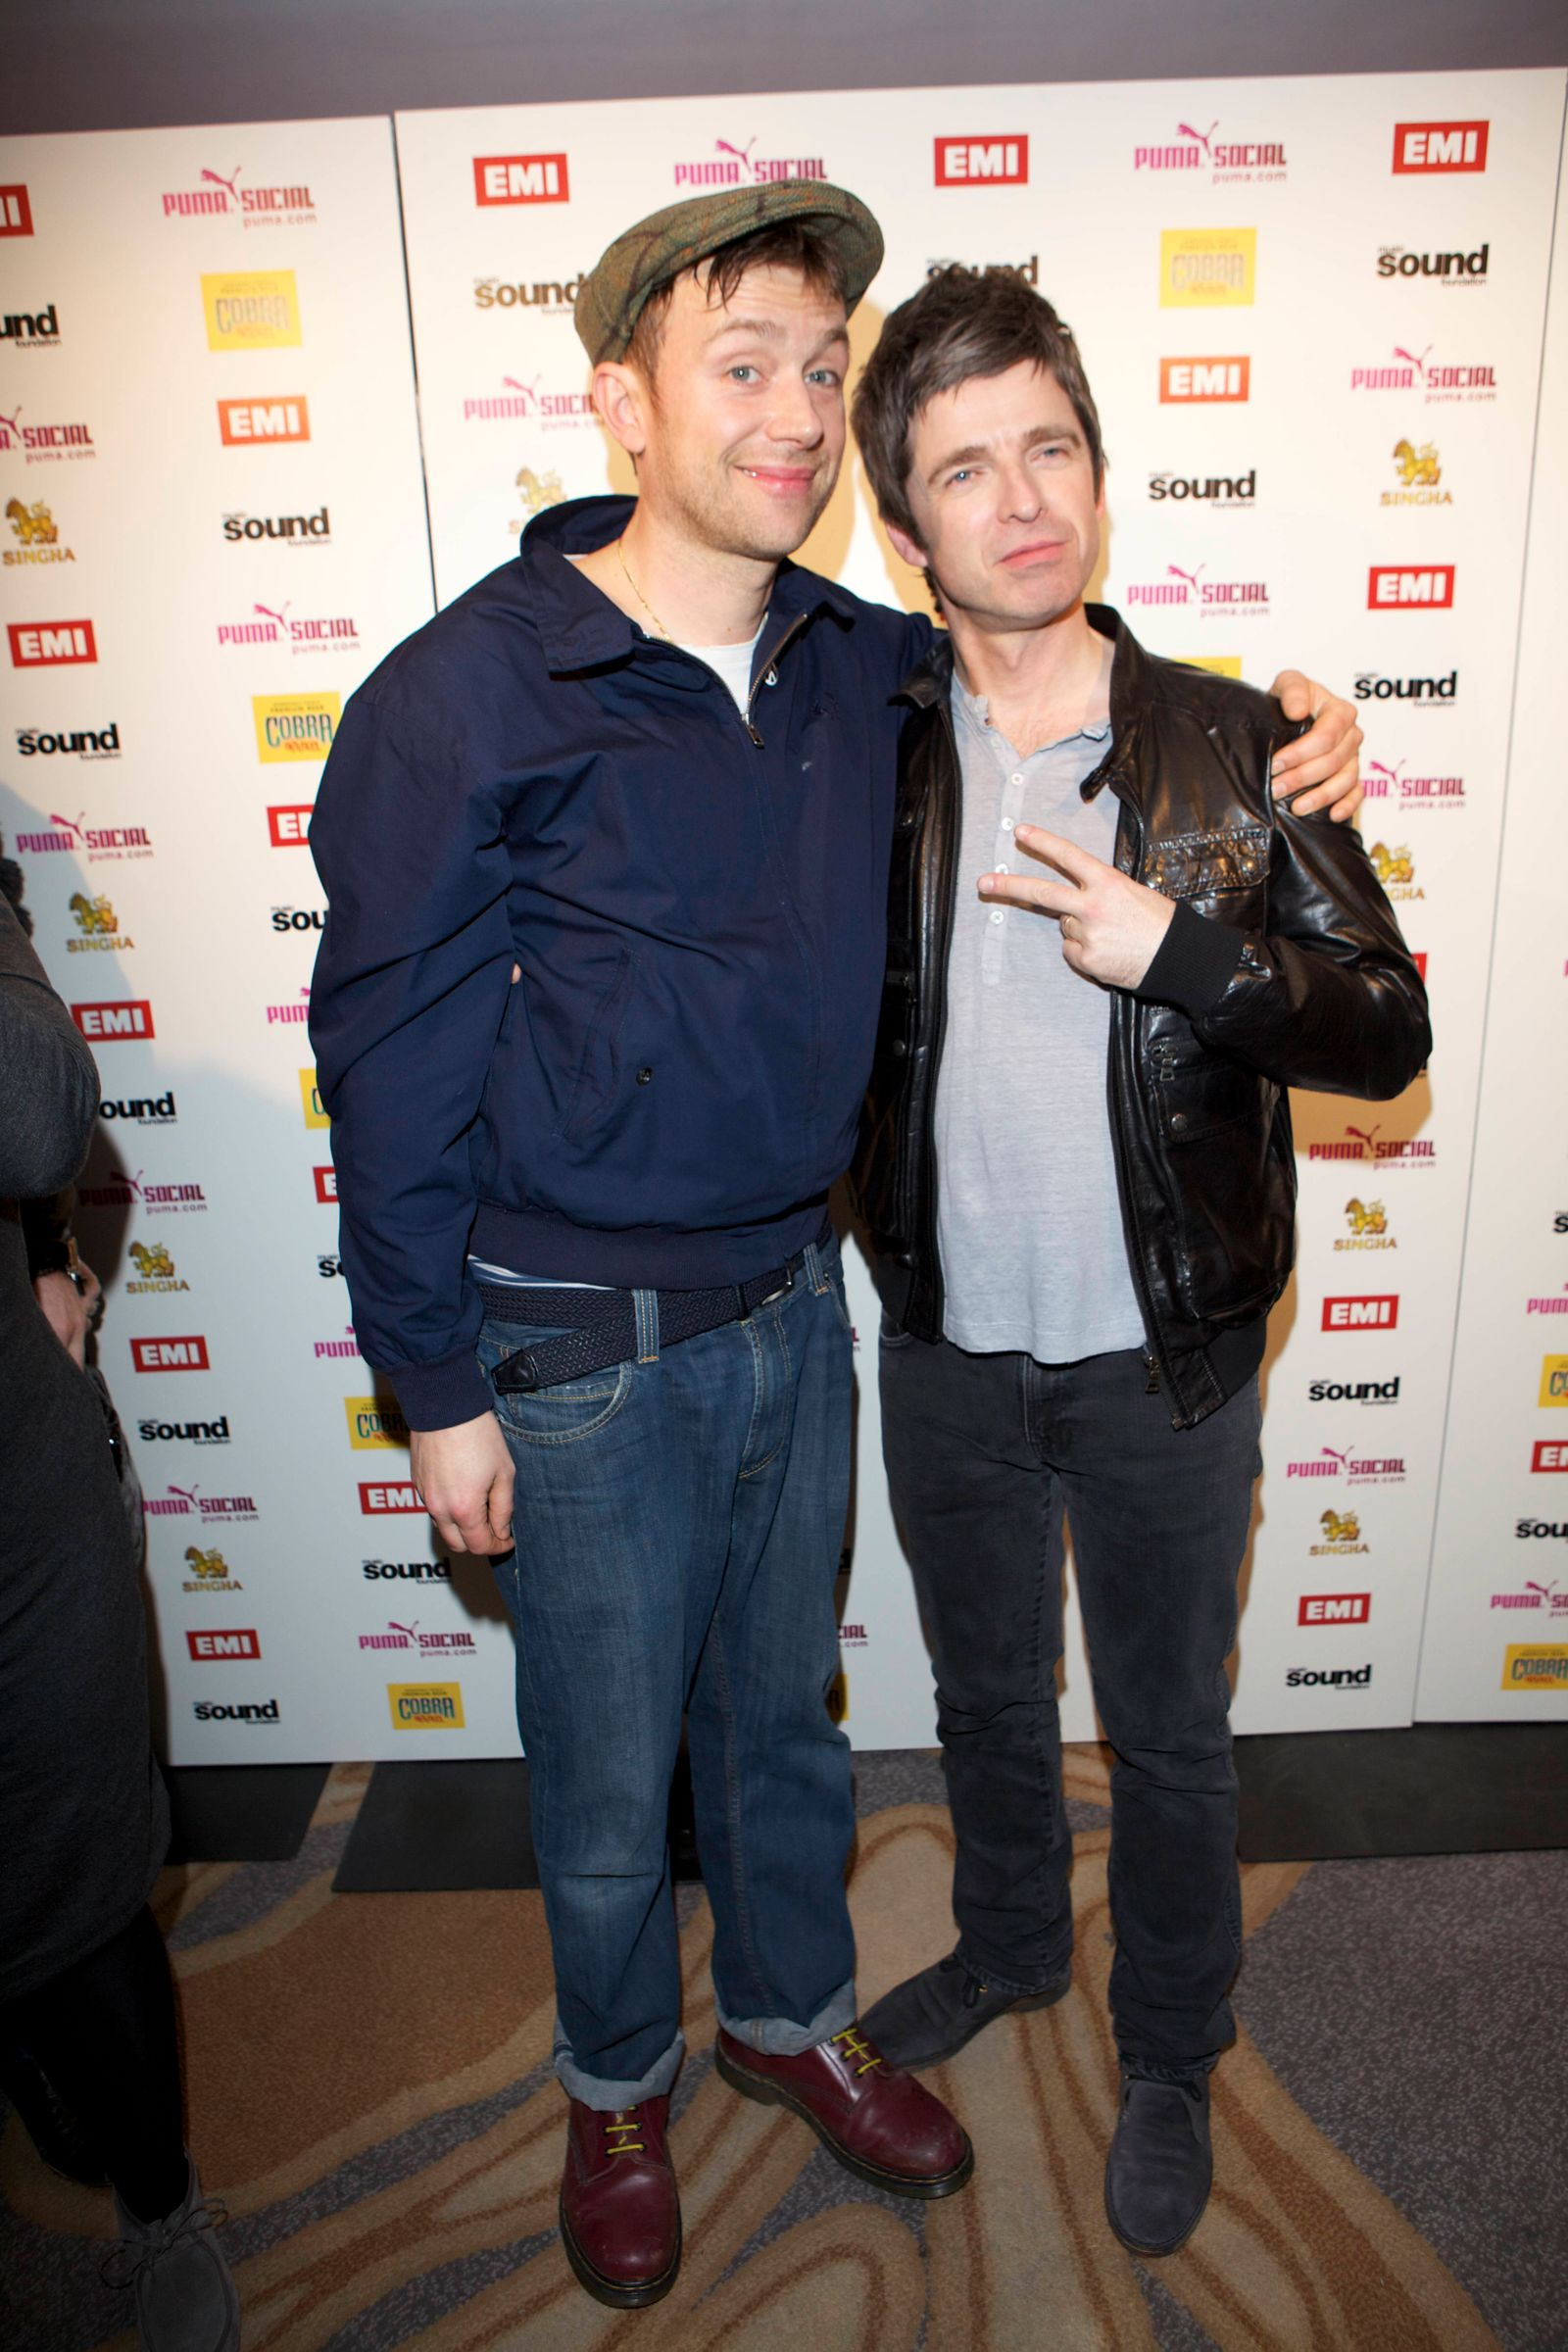 The BRIT Awards 2012 - EMI Aftershow Party